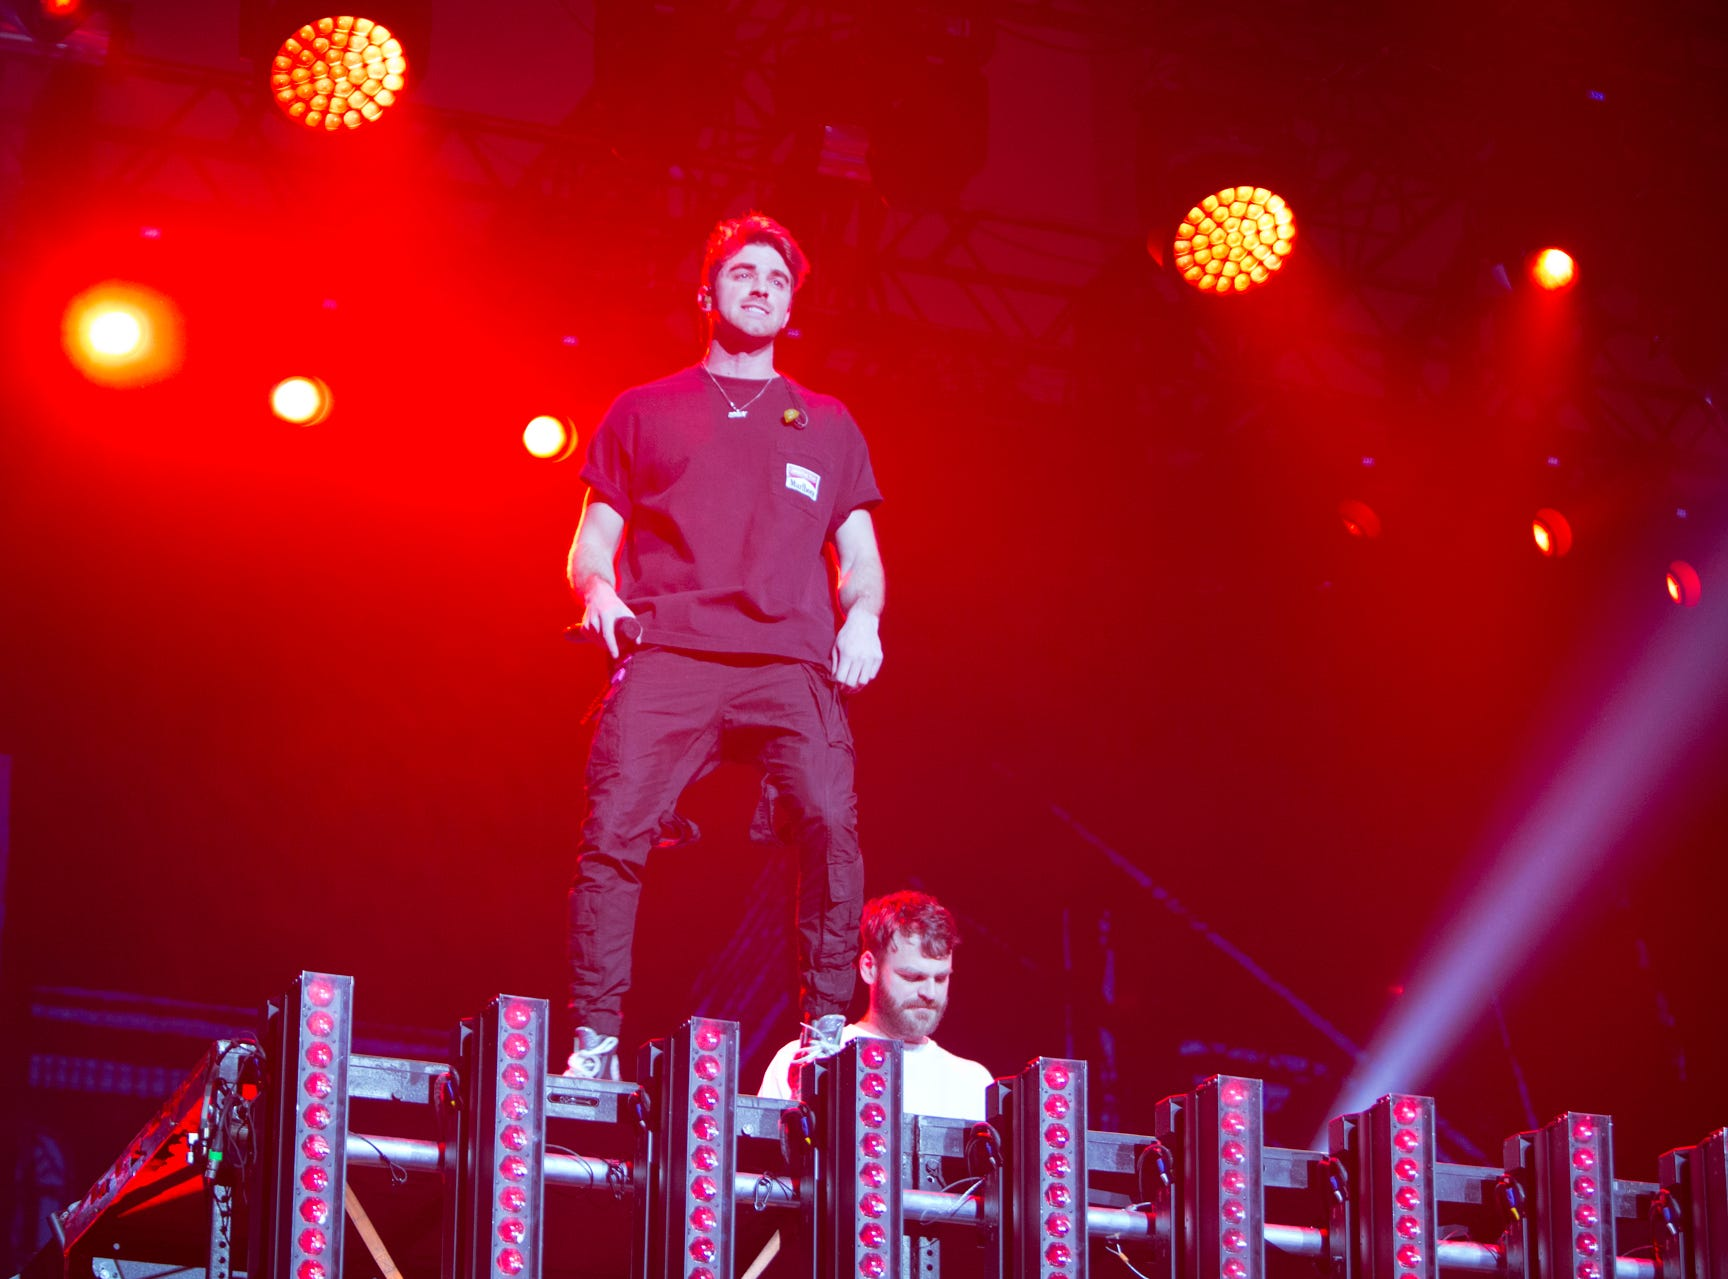 The Chainsmokers performs at the TPC Scottsdale Birds Nest during the Waste Management Phoenix Open on Friday, Feb. 1, 2019.  Lisa Webb/Special for AZCentral.com